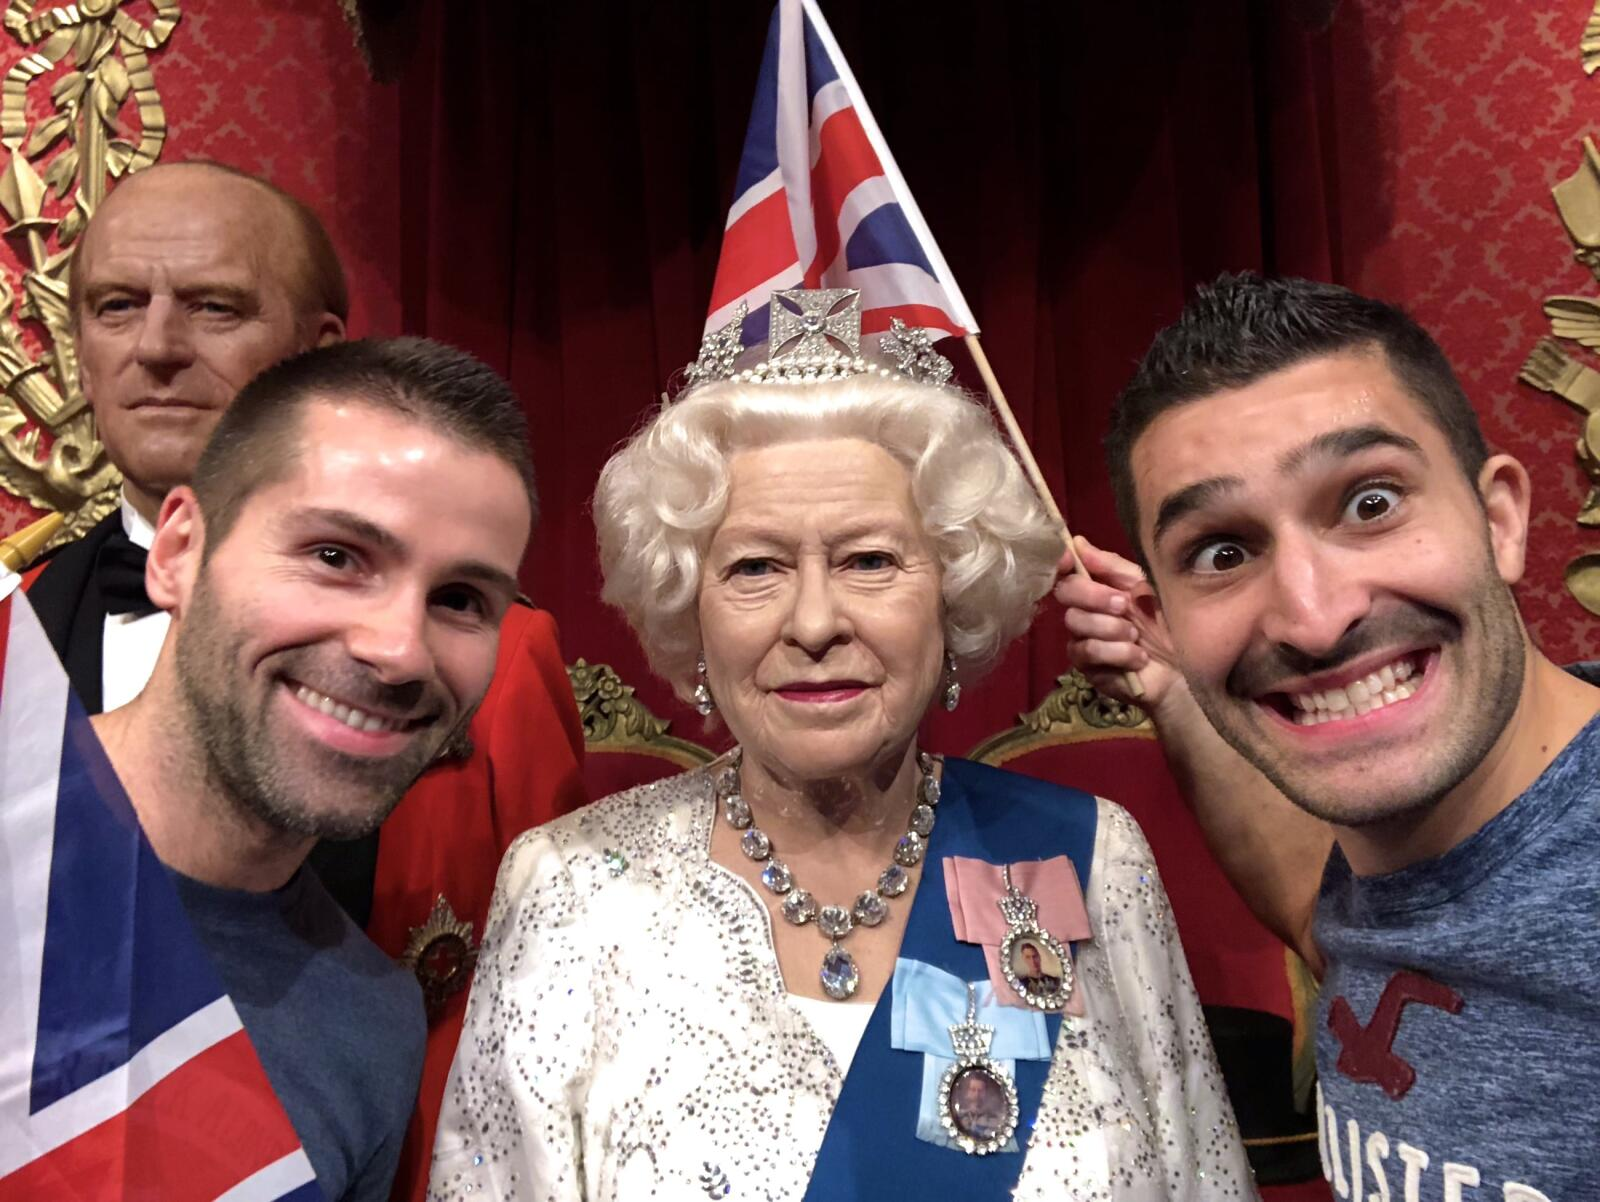 Queen Elizabeth gay icon at Madame Tussauds